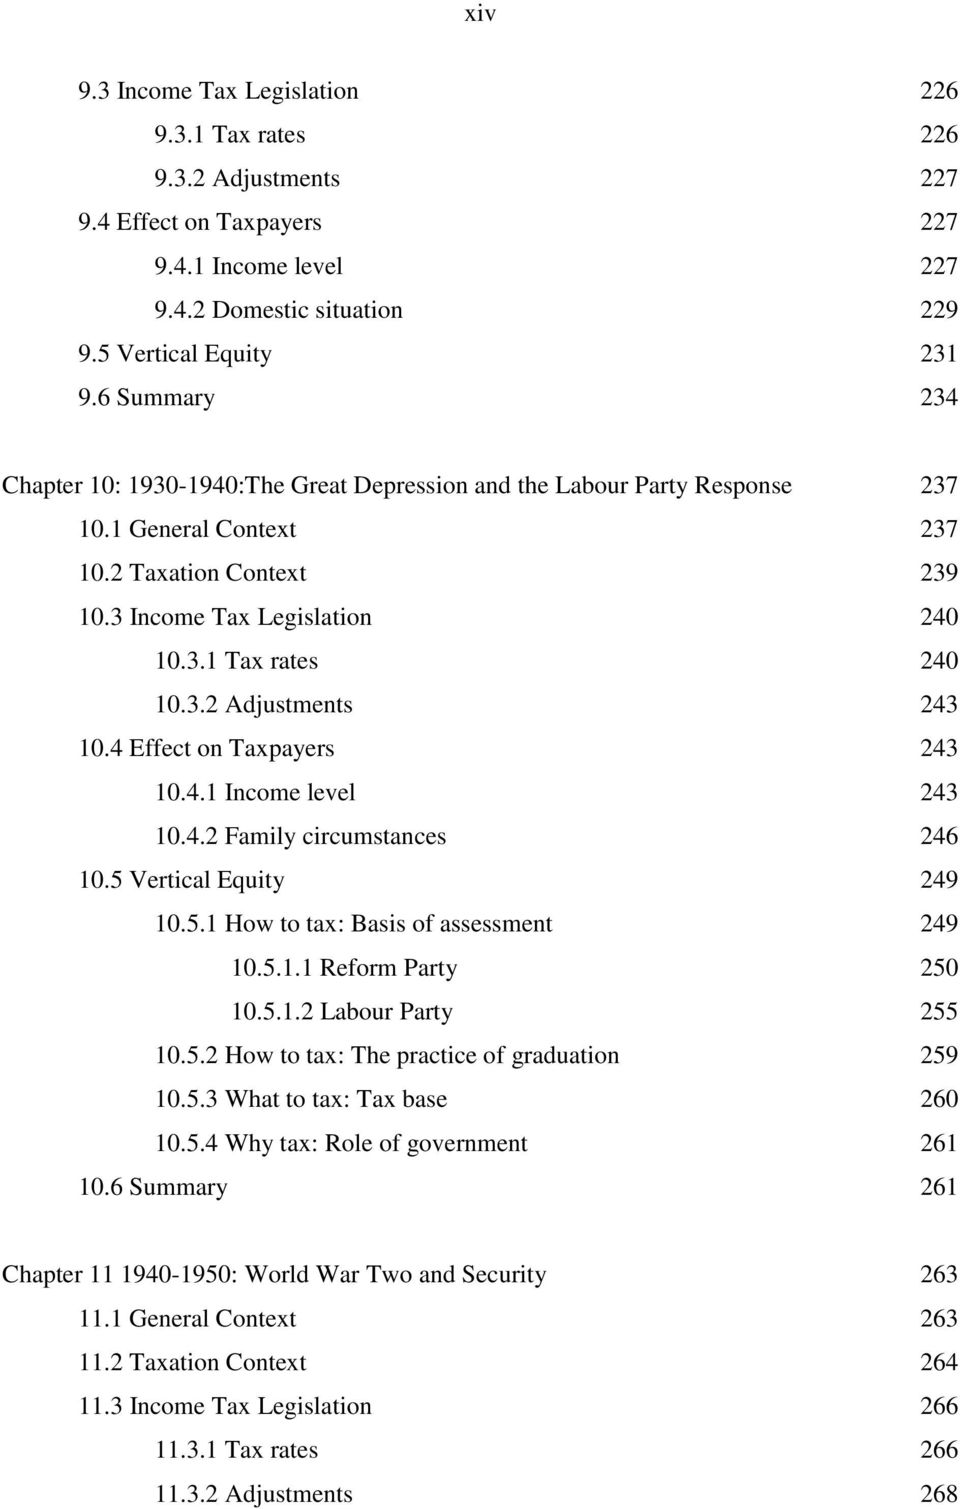 3.2 Adjustments 10.4 Effect on Taxpayers 10.4.1 Income level 10.4.2 Family circumstances 10.5 Vertical Equity 10.5.1 How to tax: Basis of assessment 10.5.1.1 Reform Party 10.5.1.2 Labour Party 10.5.2 How to tax: The practice of graduation 10.